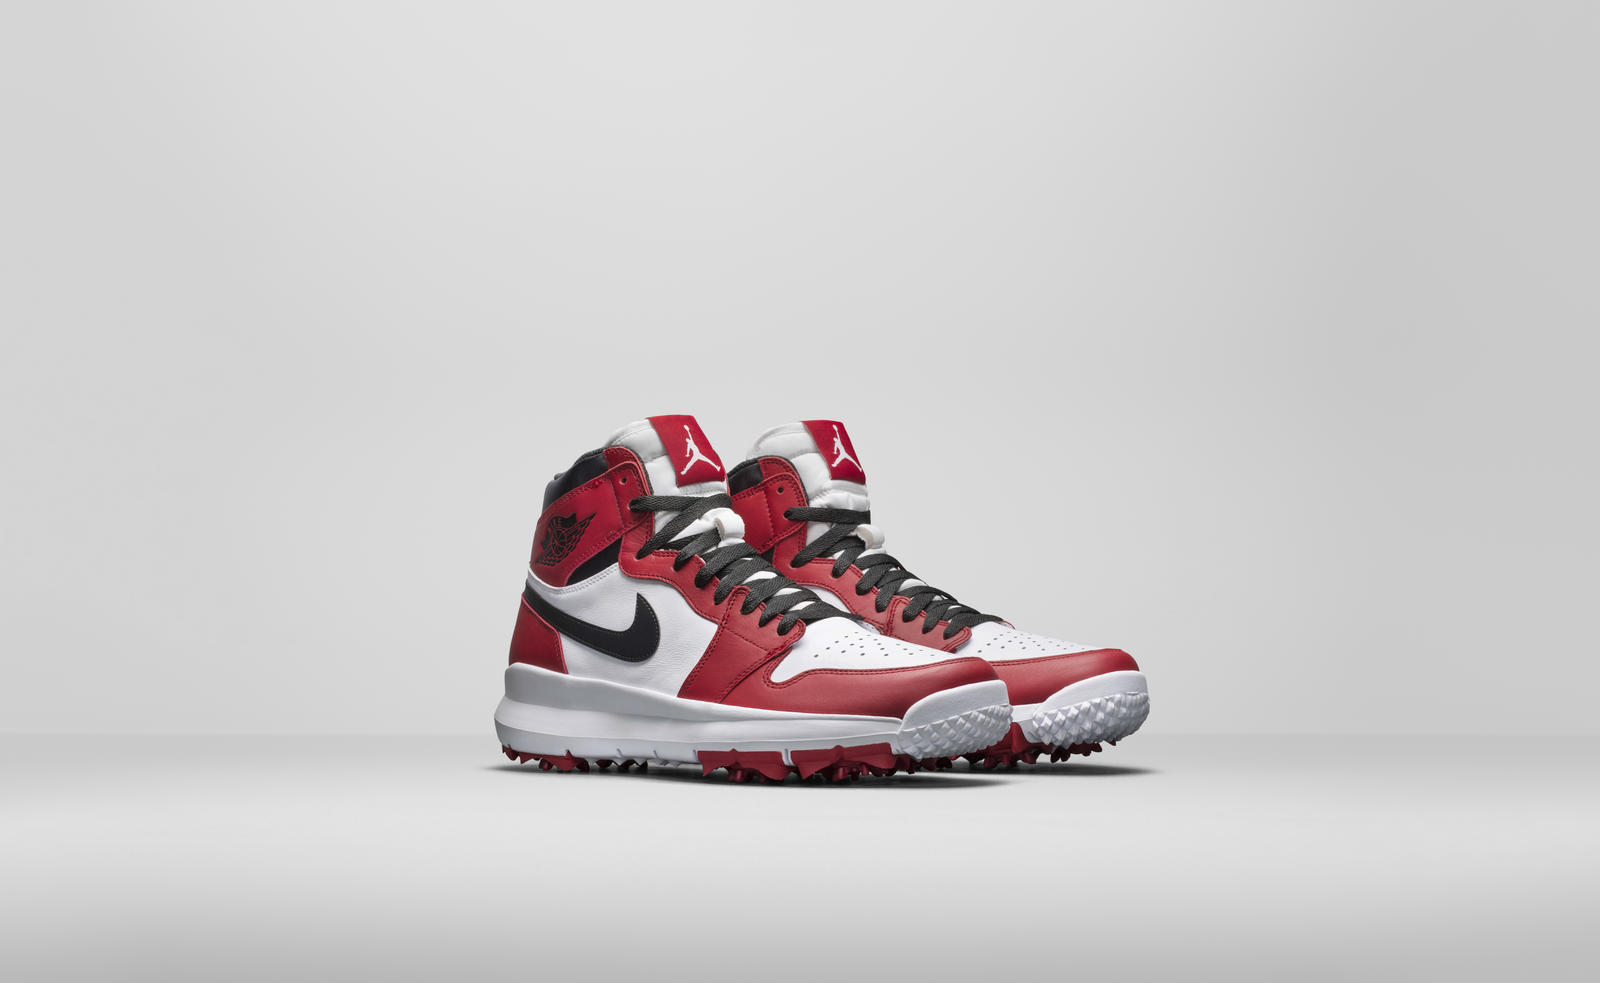 64a97a32867d NO BUY SELL TRADE POSTS) Air Jordan GOLF footwear - Jordan Trainer ...